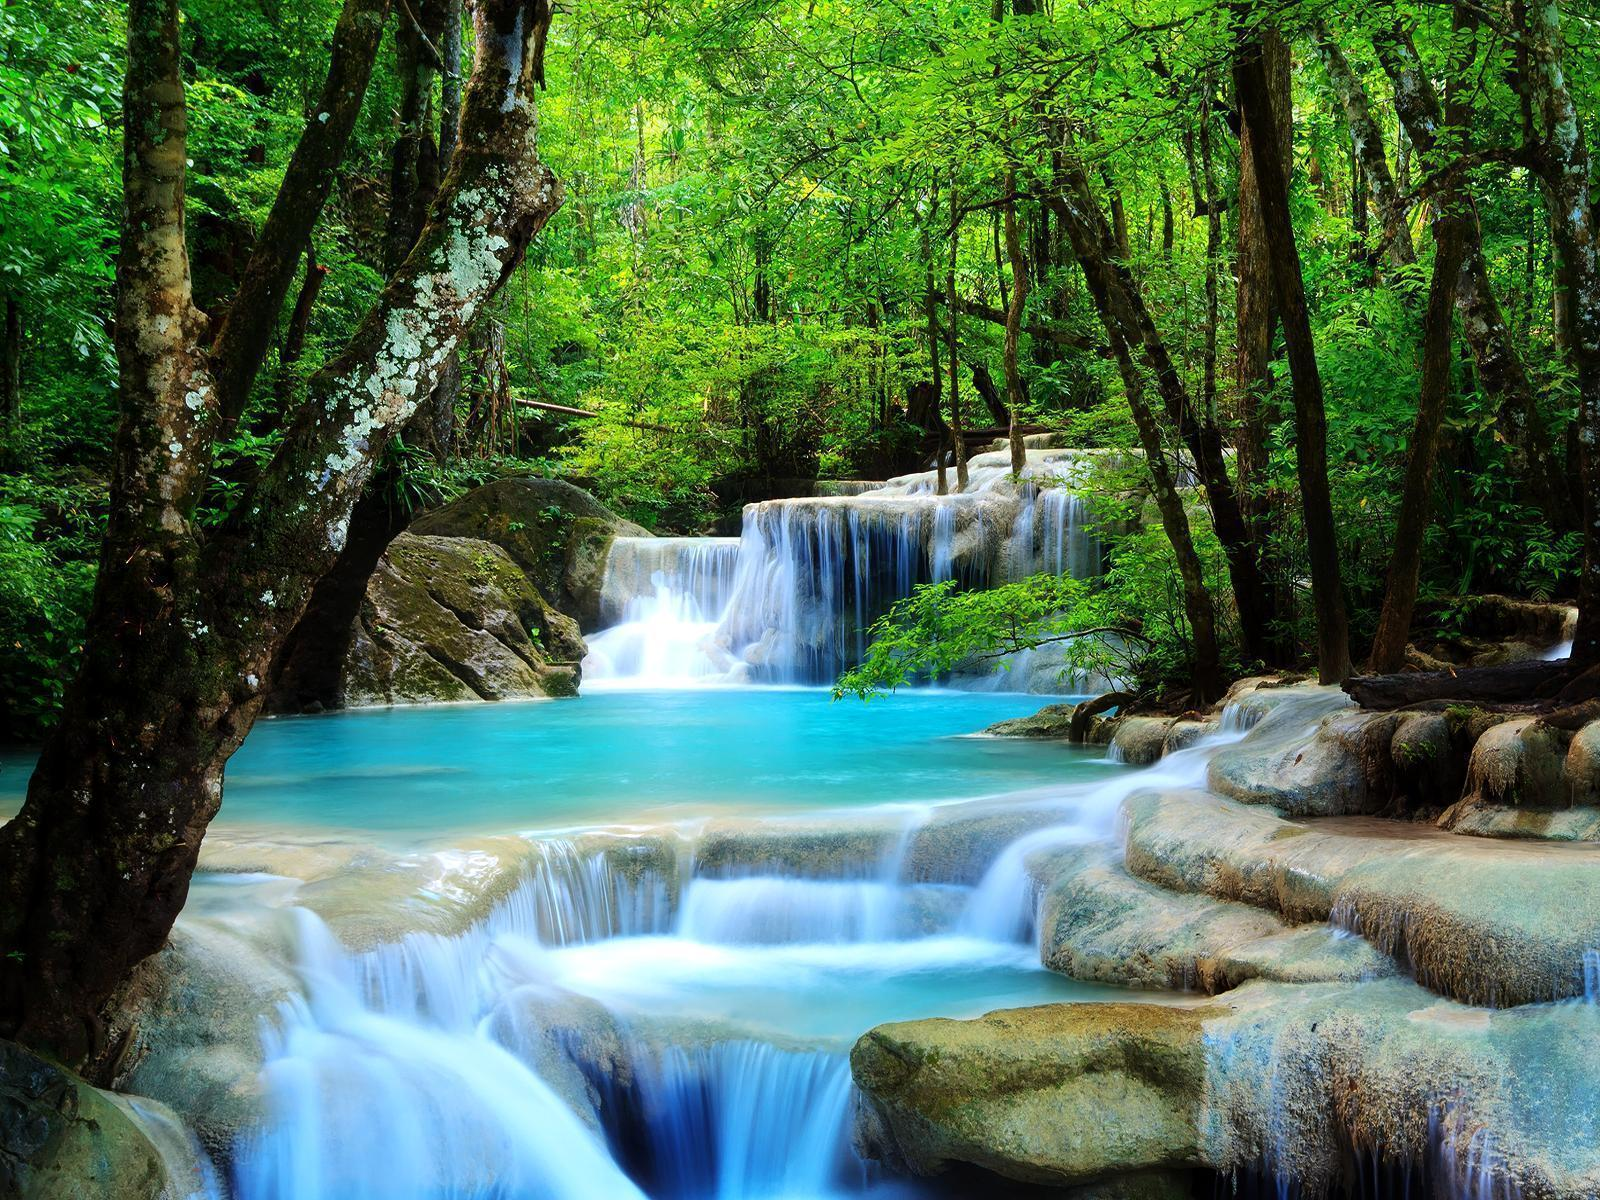 Forest Waterfall Wallpaper What We Have Learned From Romney